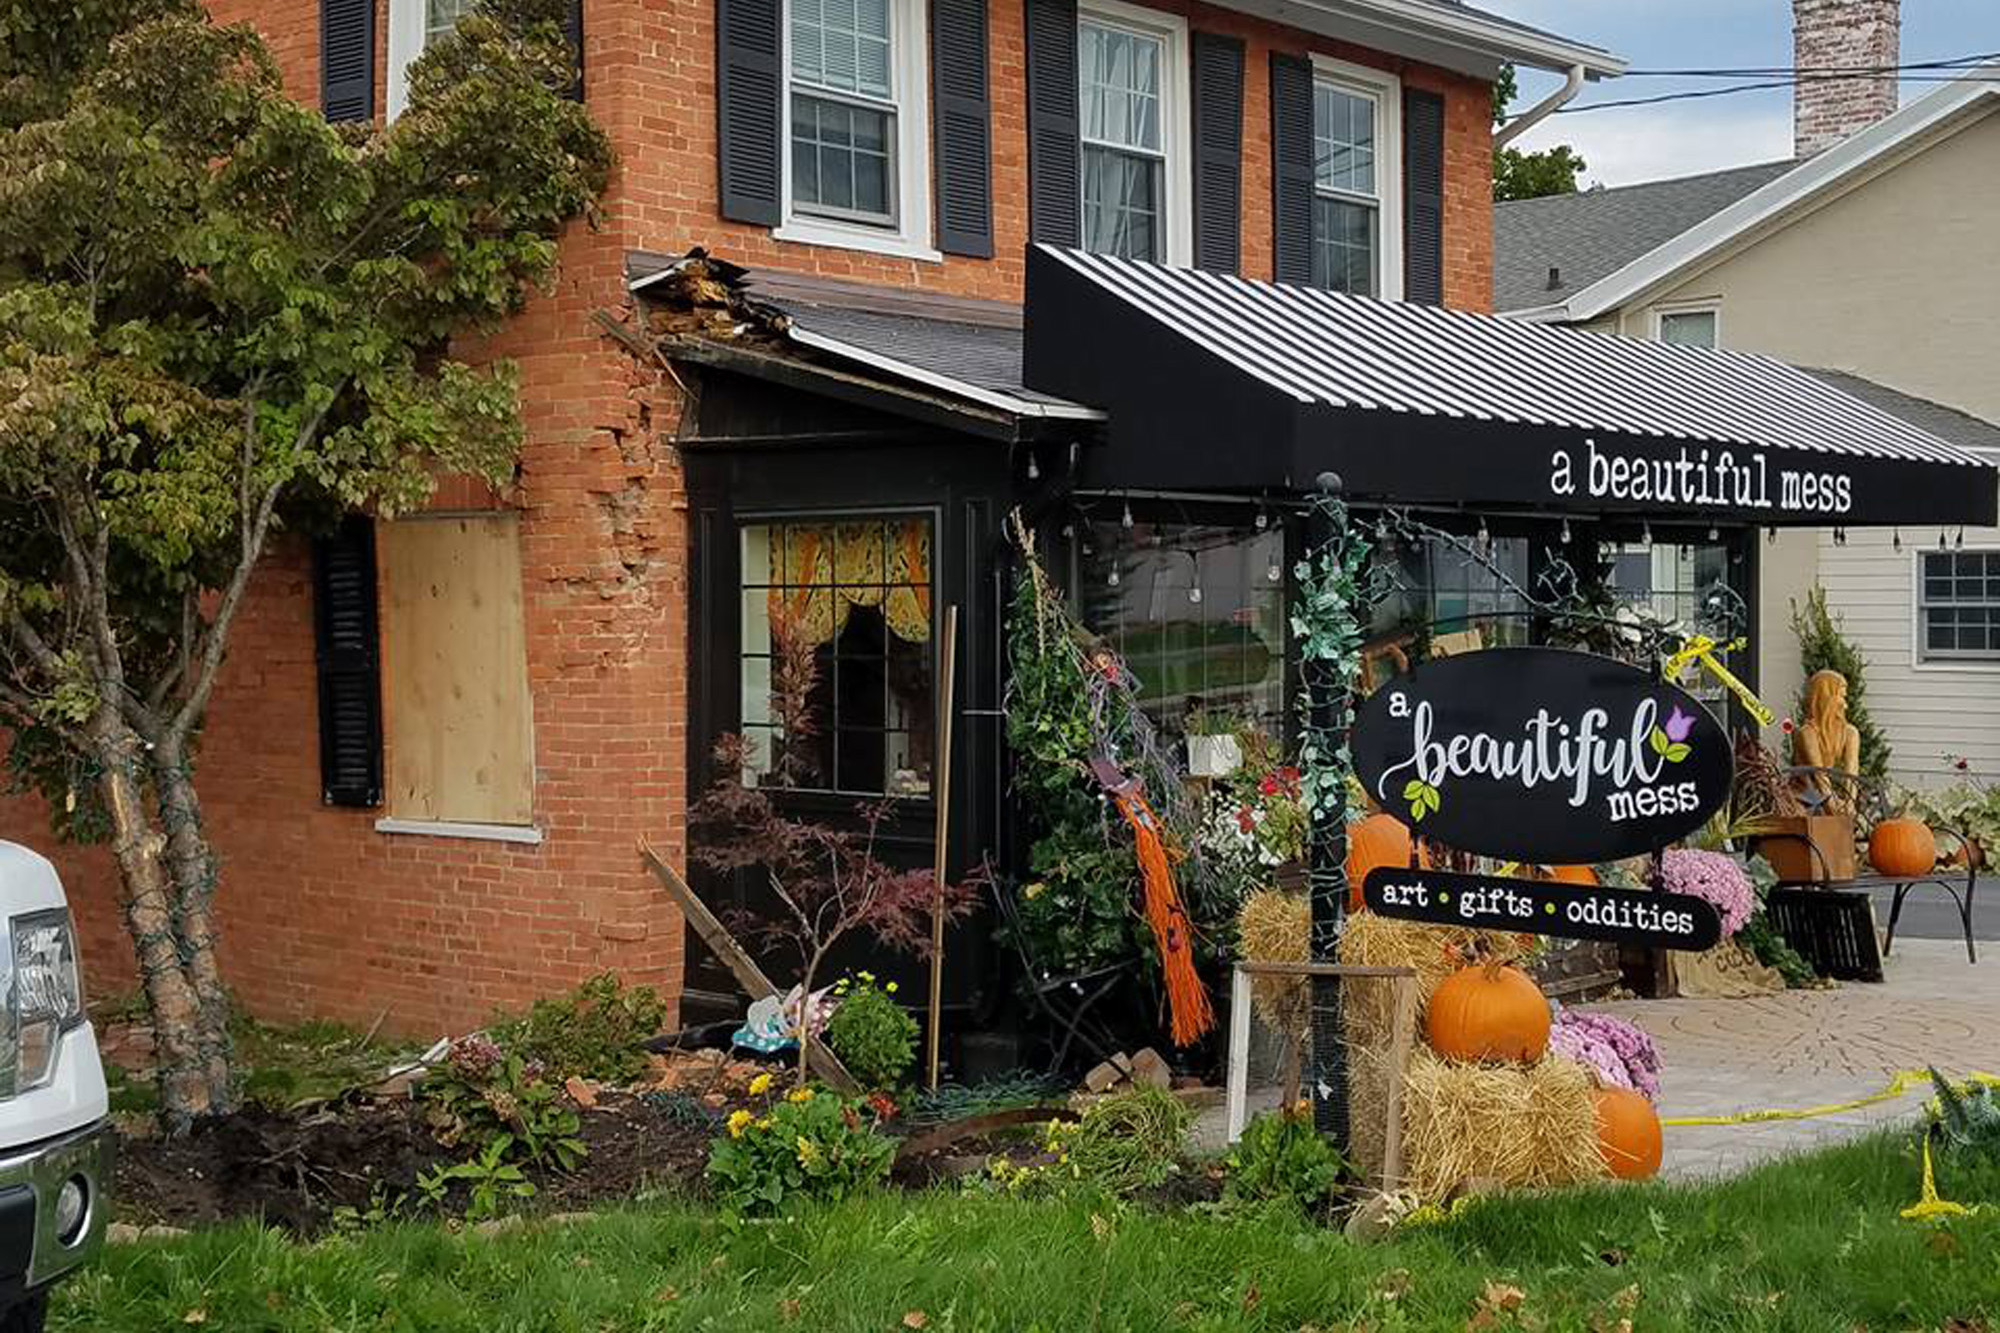 Garbage truck crashes into store called A Beautiful Mess